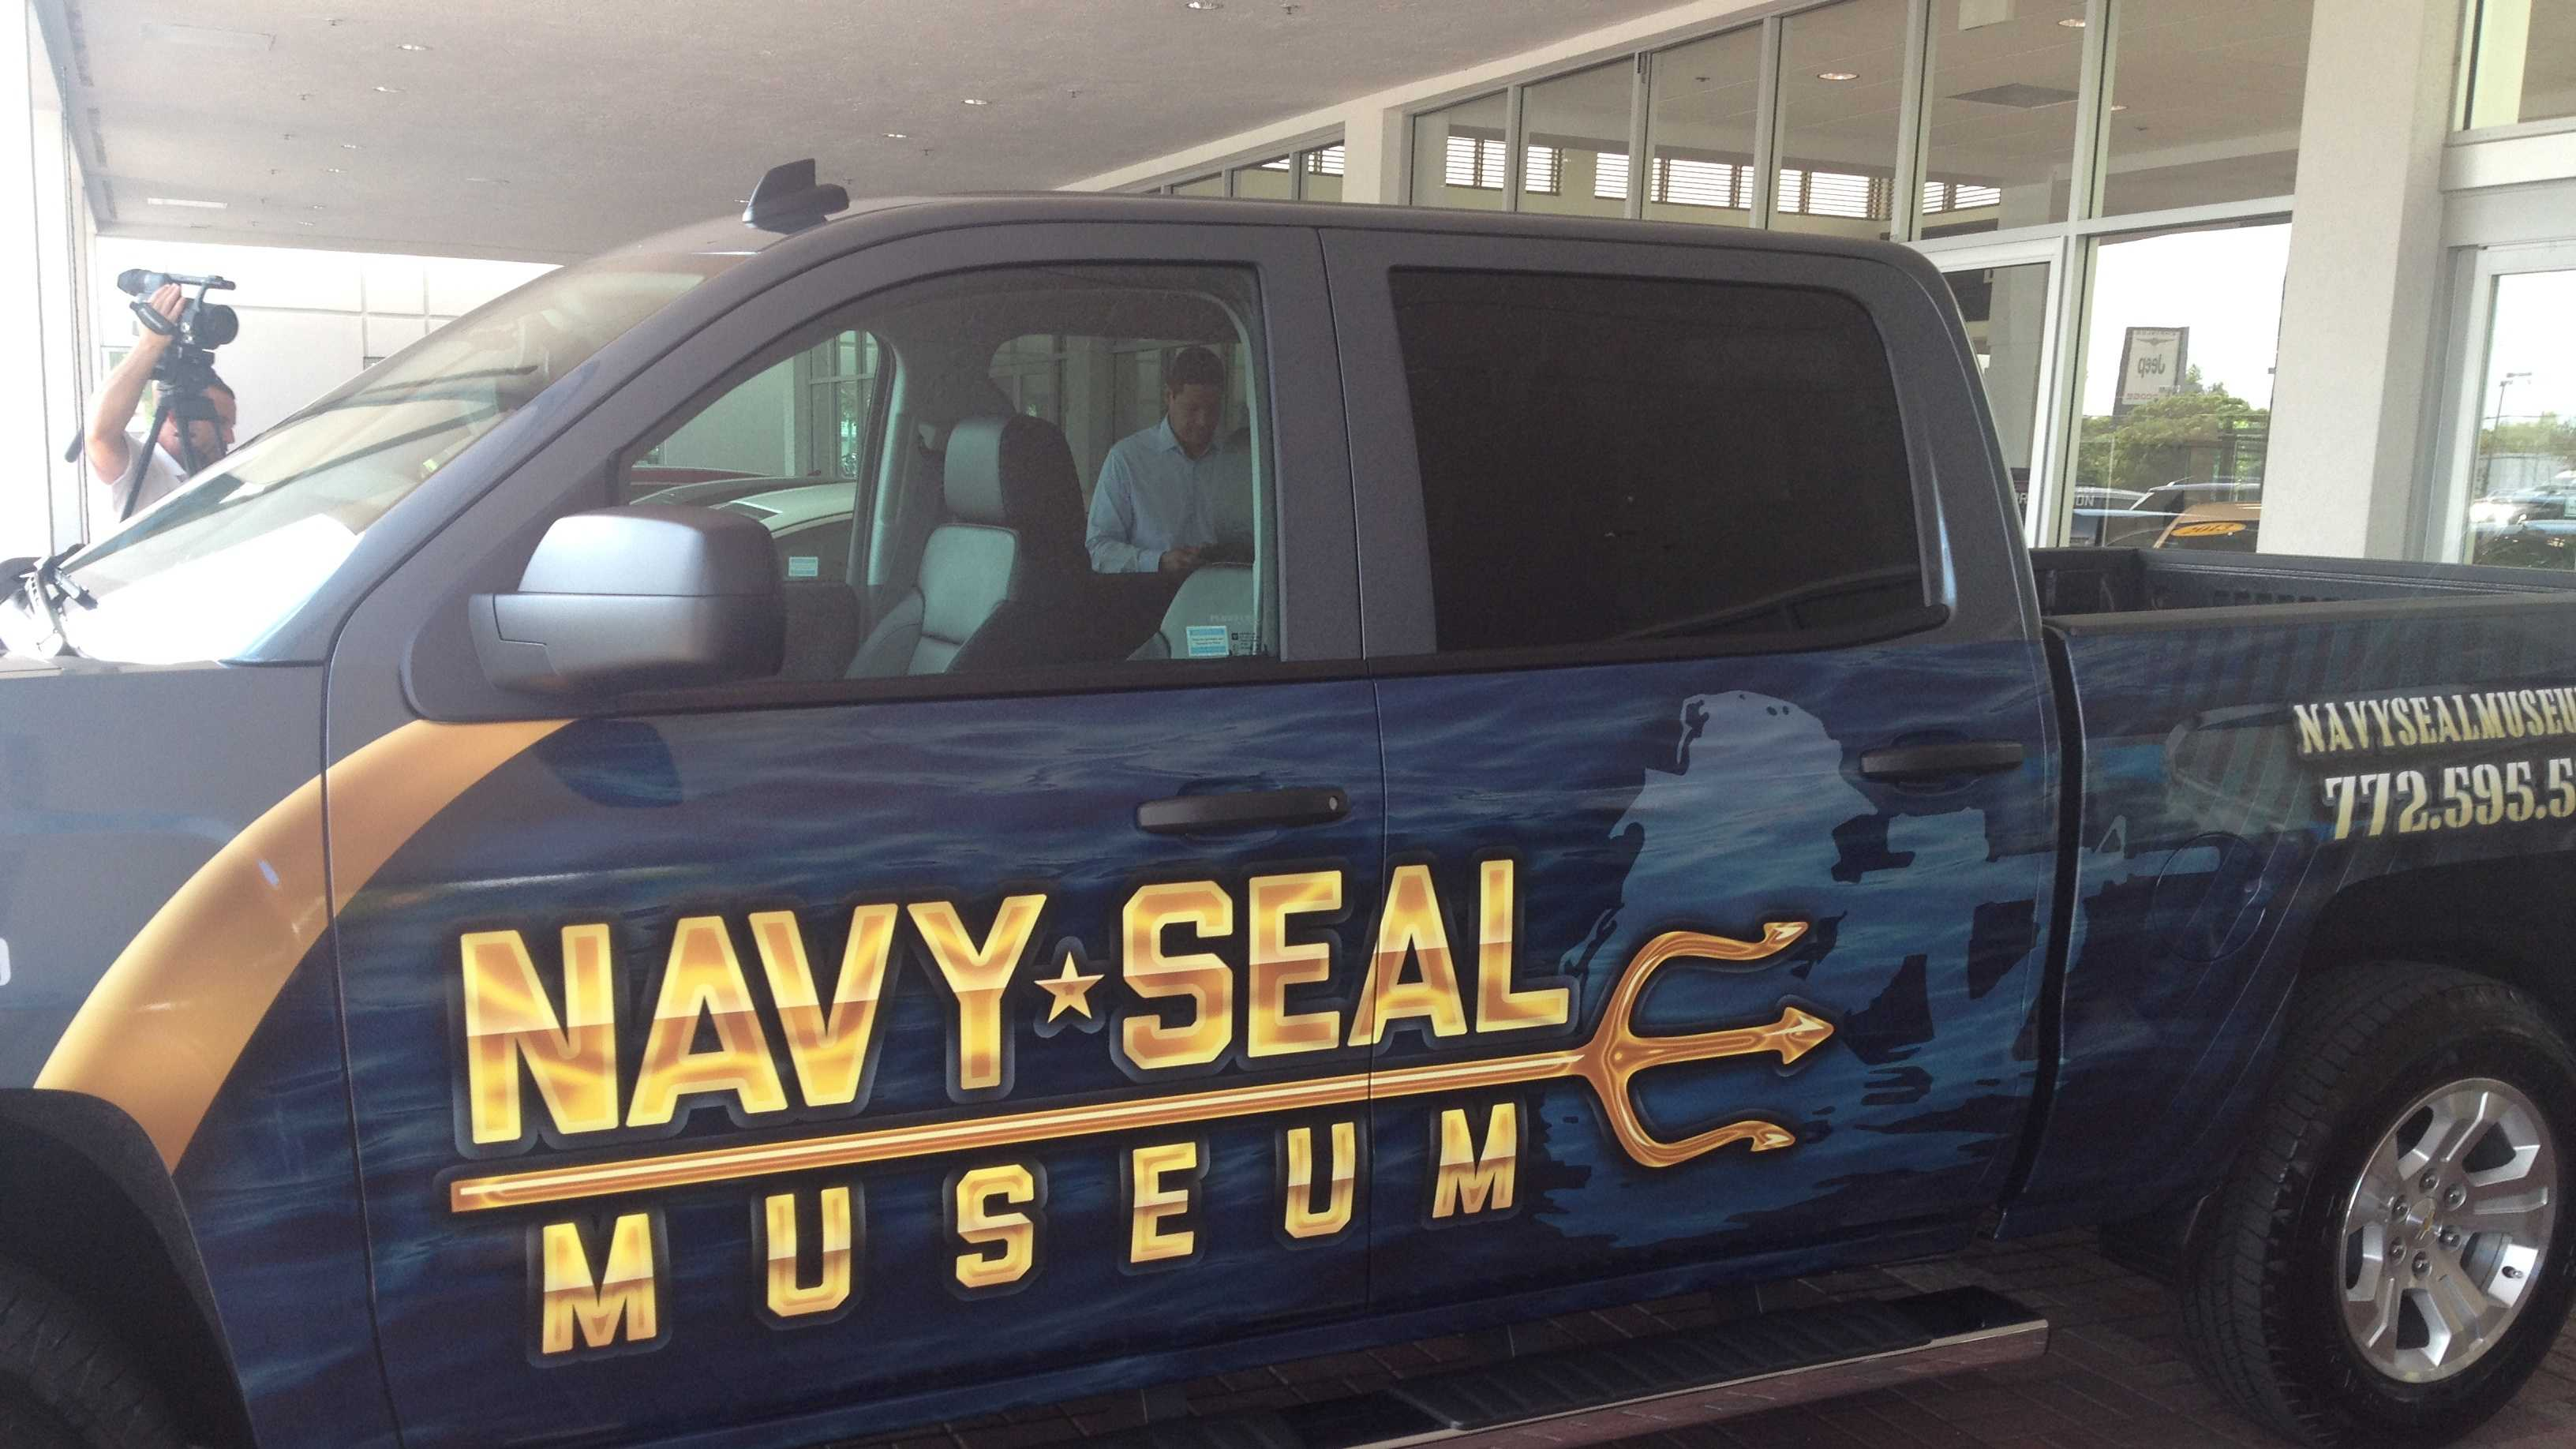 The 2014 Silvarado truck donated to the Navy Seal Museum and Trident house in West Palm Beach, donated by the Schumacher Auto Group.